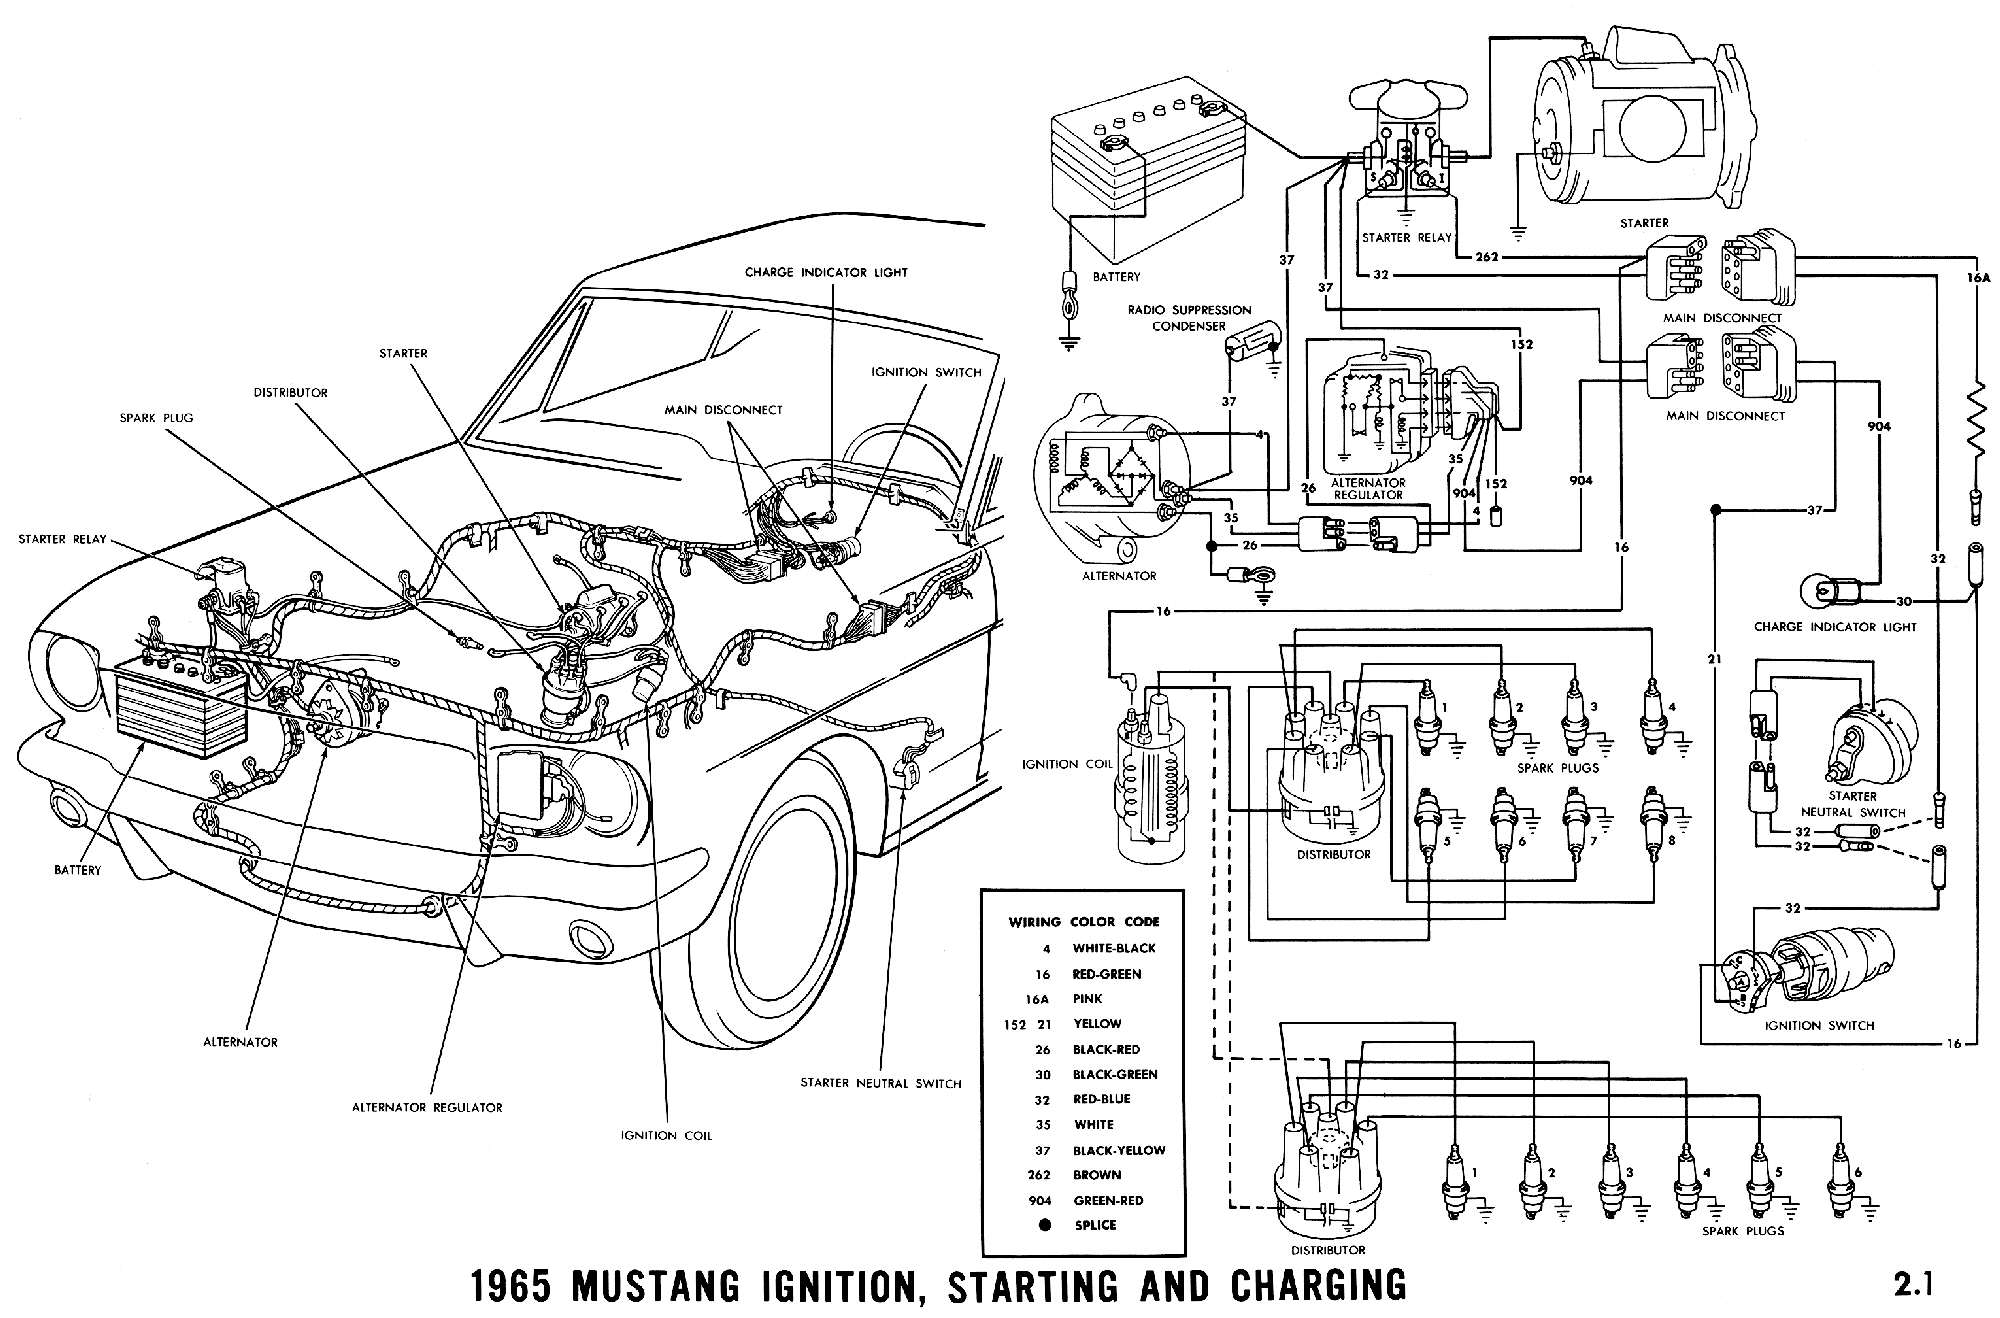 1965 mustang wiring diagrams average joe restoration 2012 mustang body parts at 2012 Mustang Engine Schematic